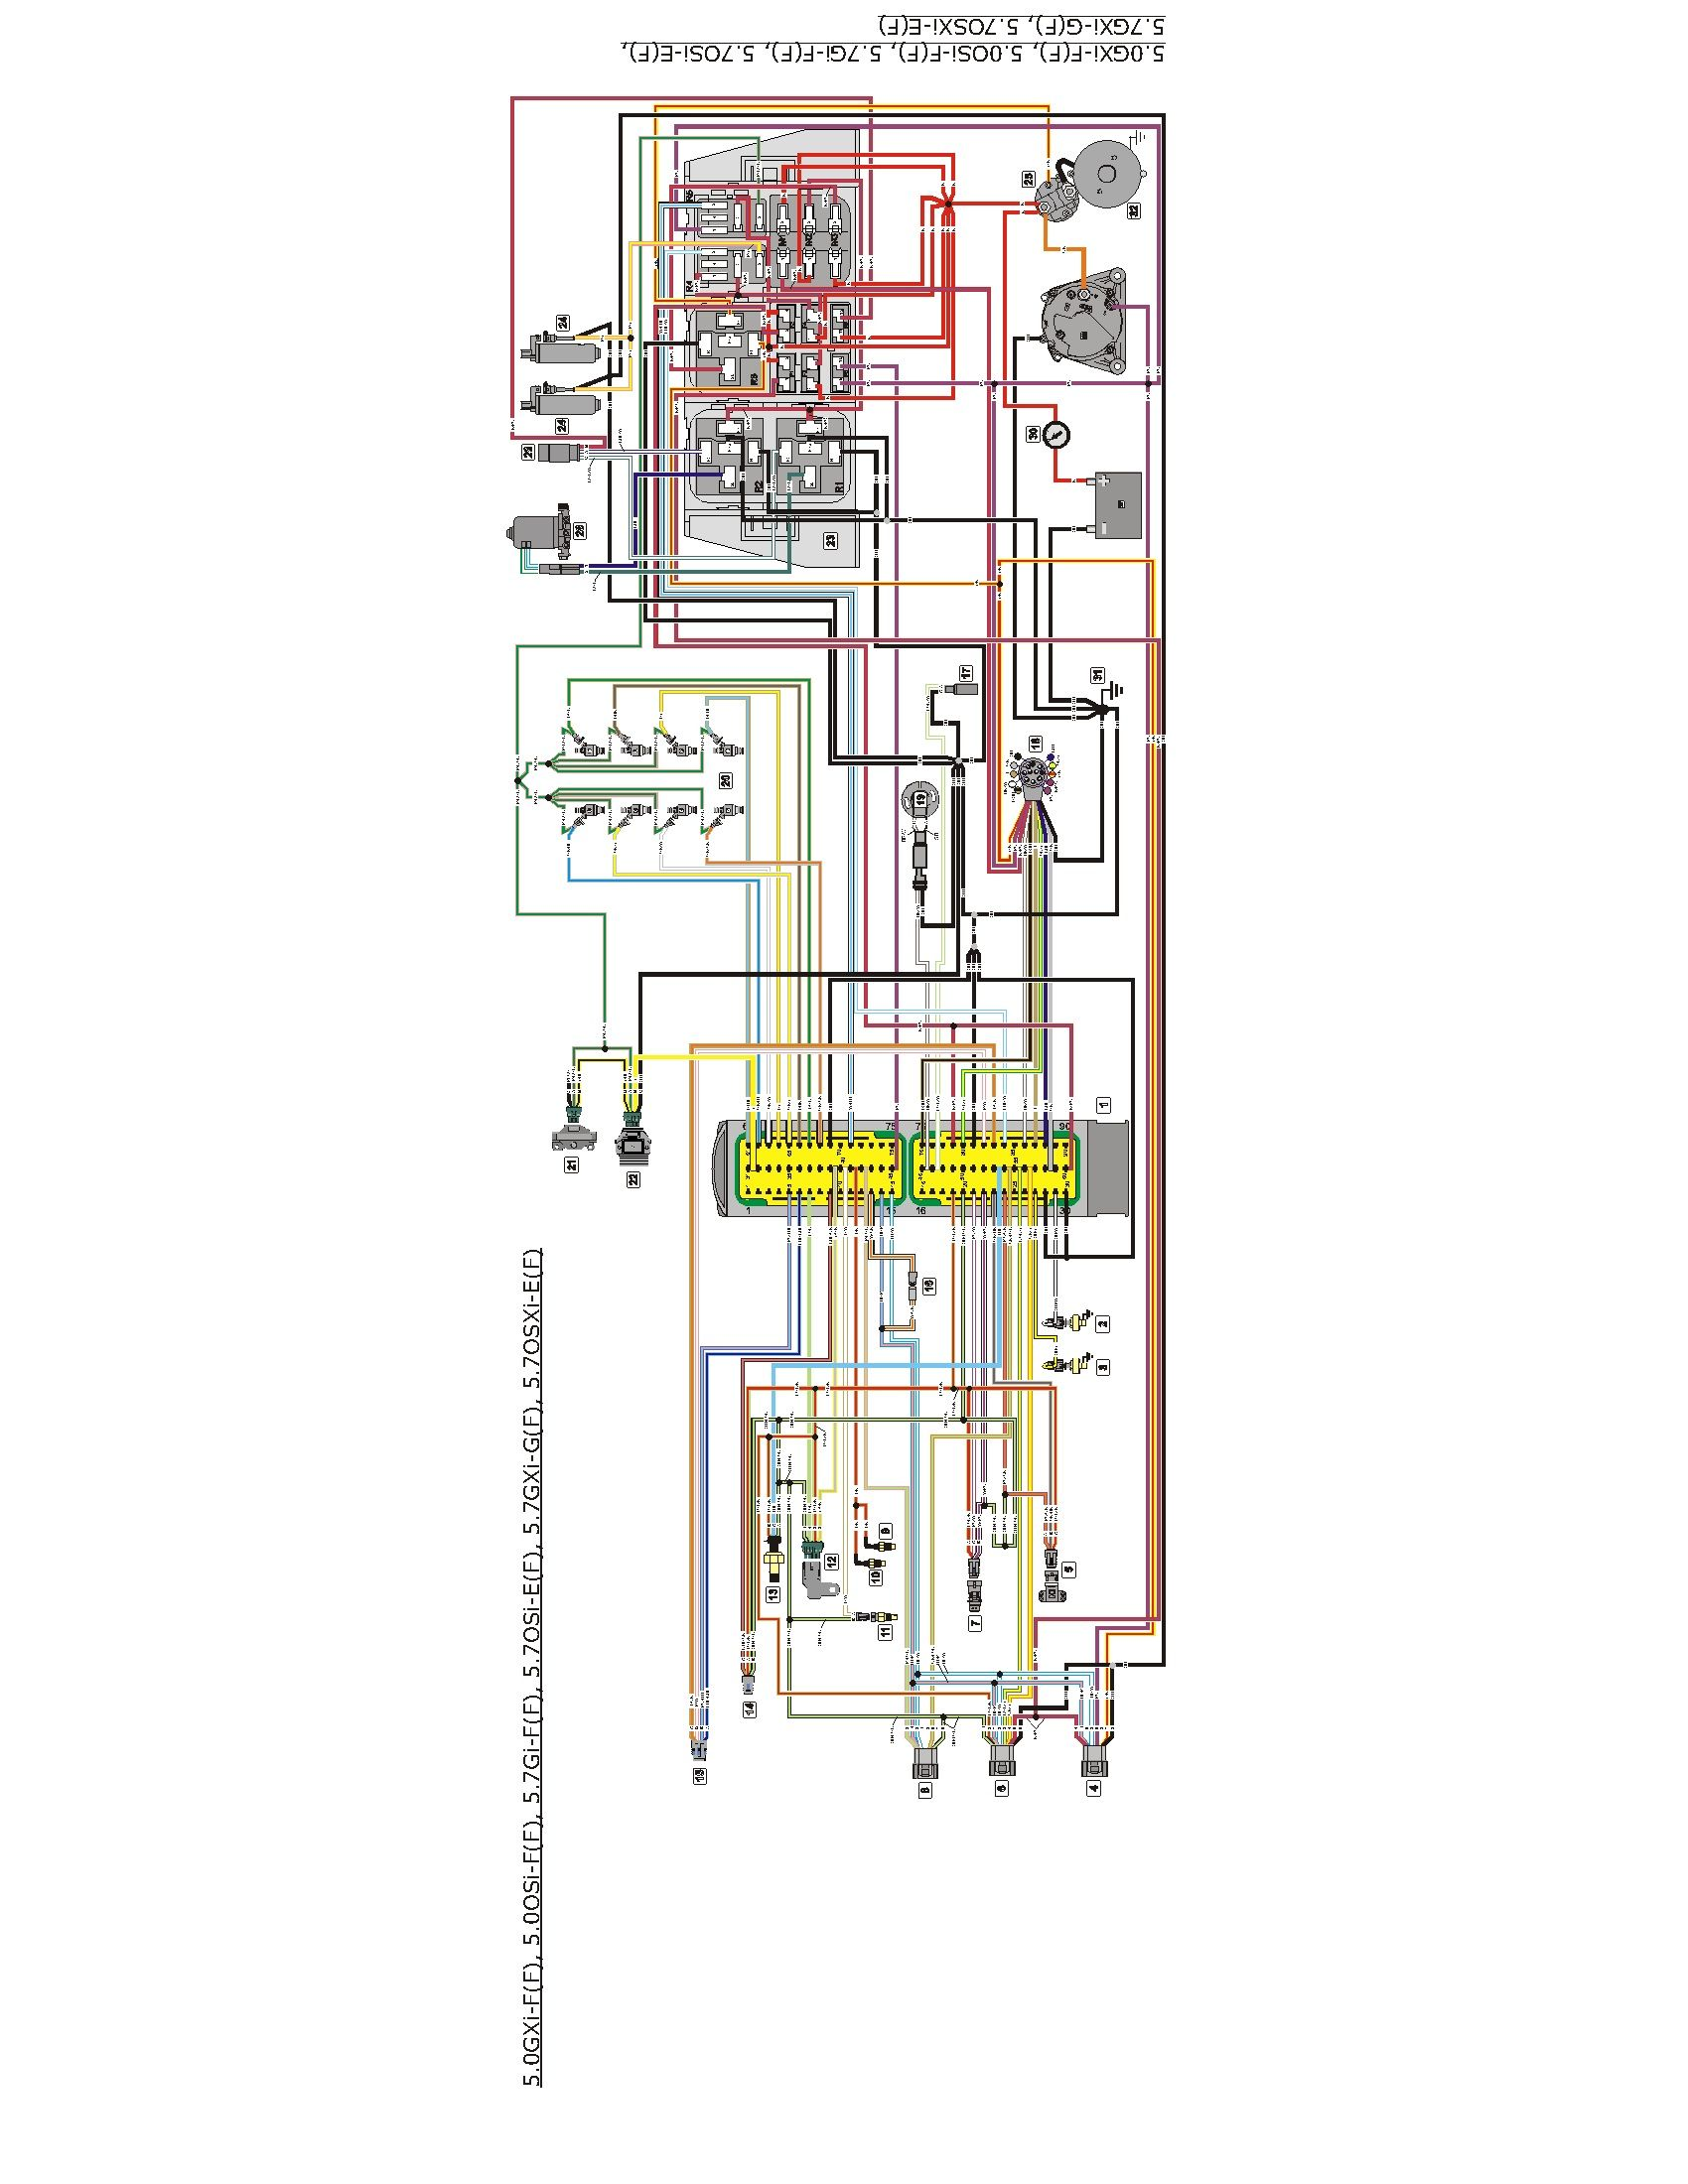 medium resolution of 1985 volvo alternator wiring everything wiring diagram 1985 volvo alternator wiring